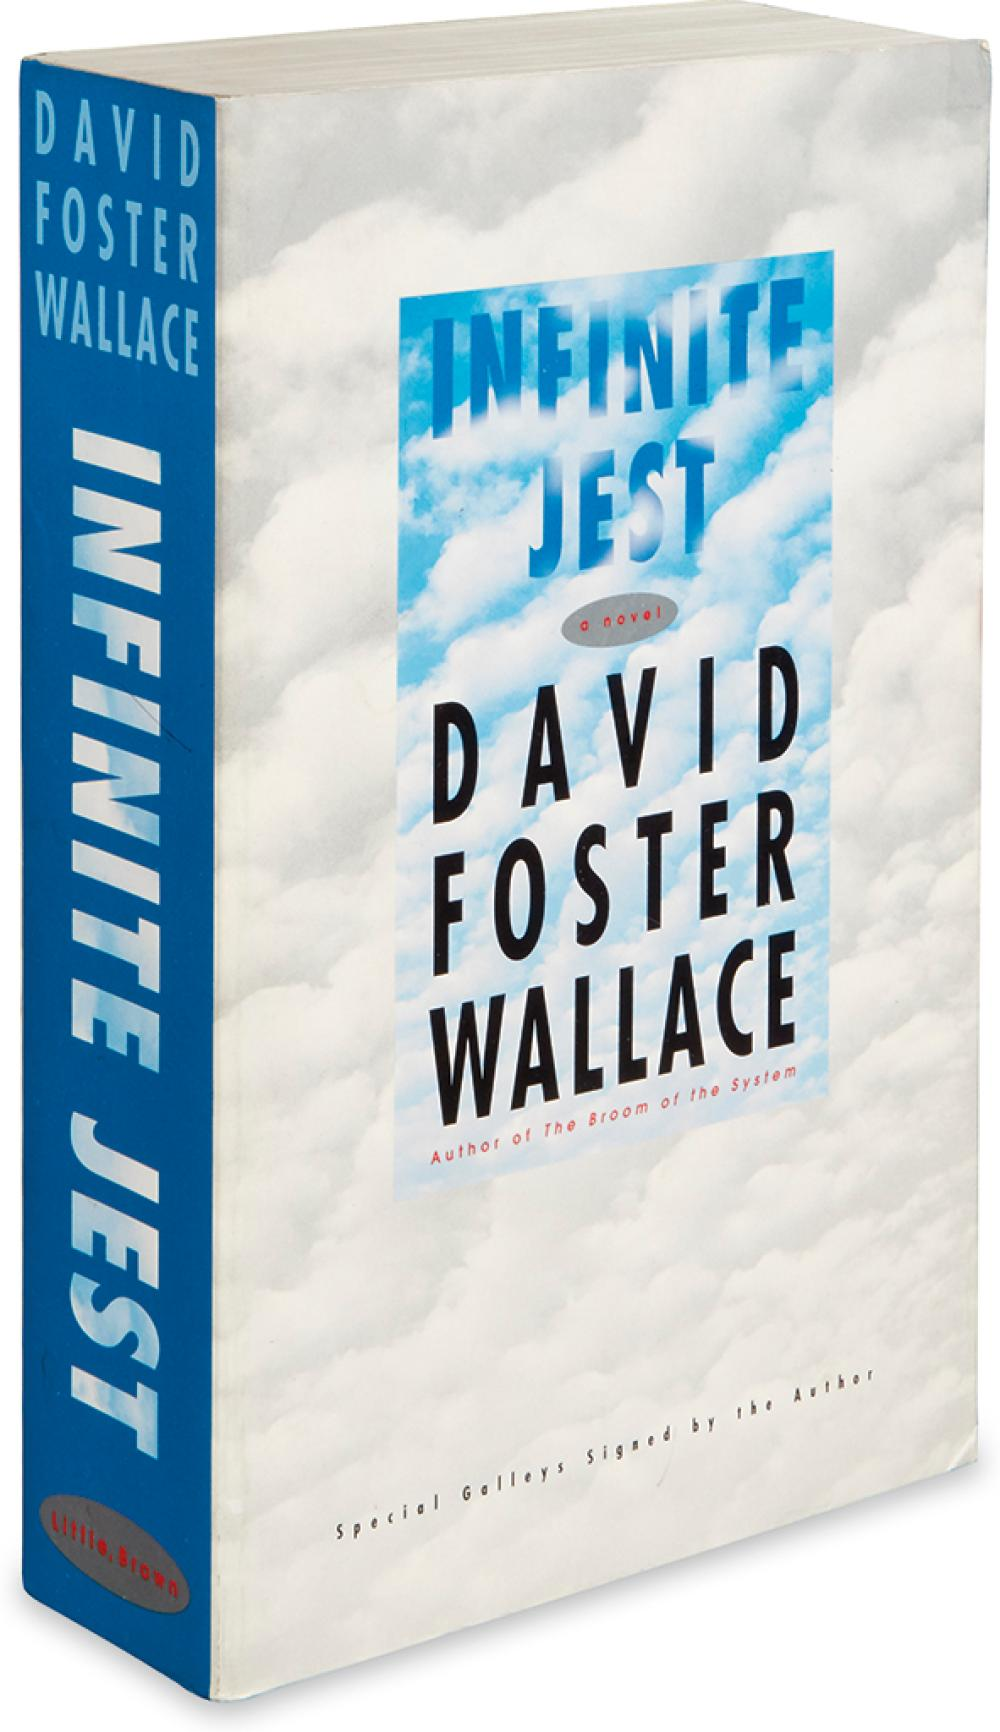 WALLACE, DAVID FOSTER. Infinite Jest.